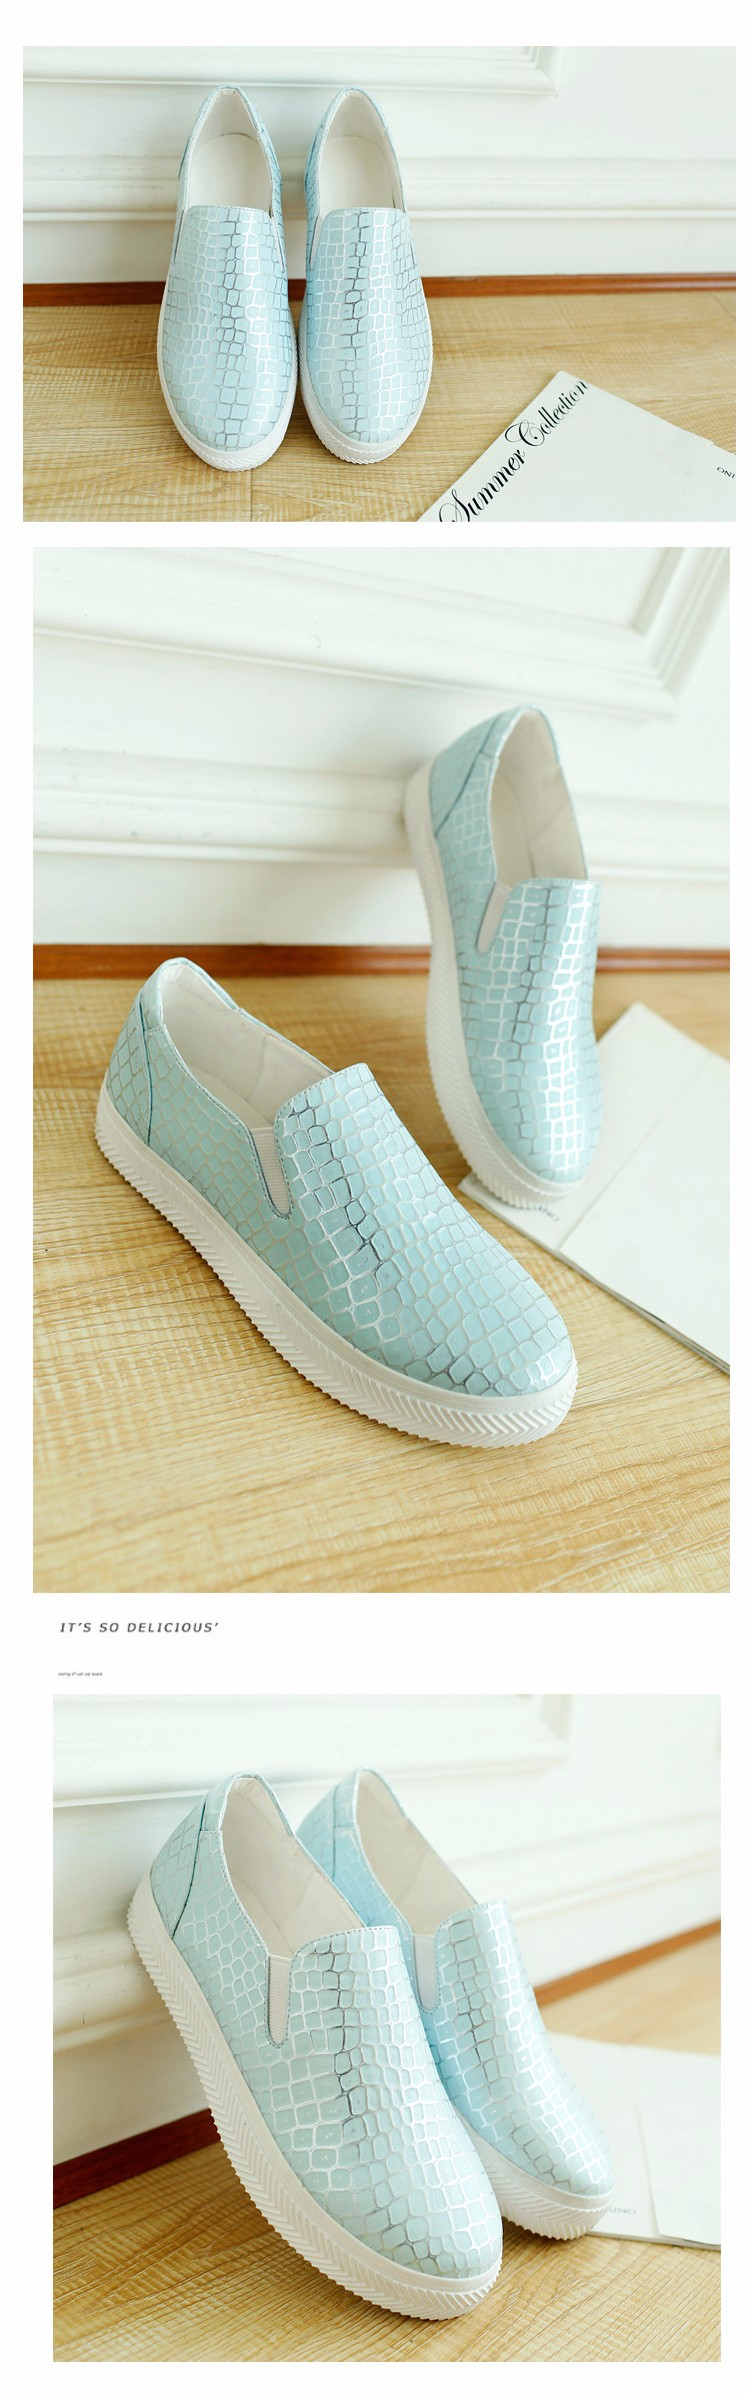 2016 New Spring Fall Fashion Flat Women Loafers Shoes Platform A Pedal Lazy Snakeskin Female Single Shoes White Blue Pink Z3.5